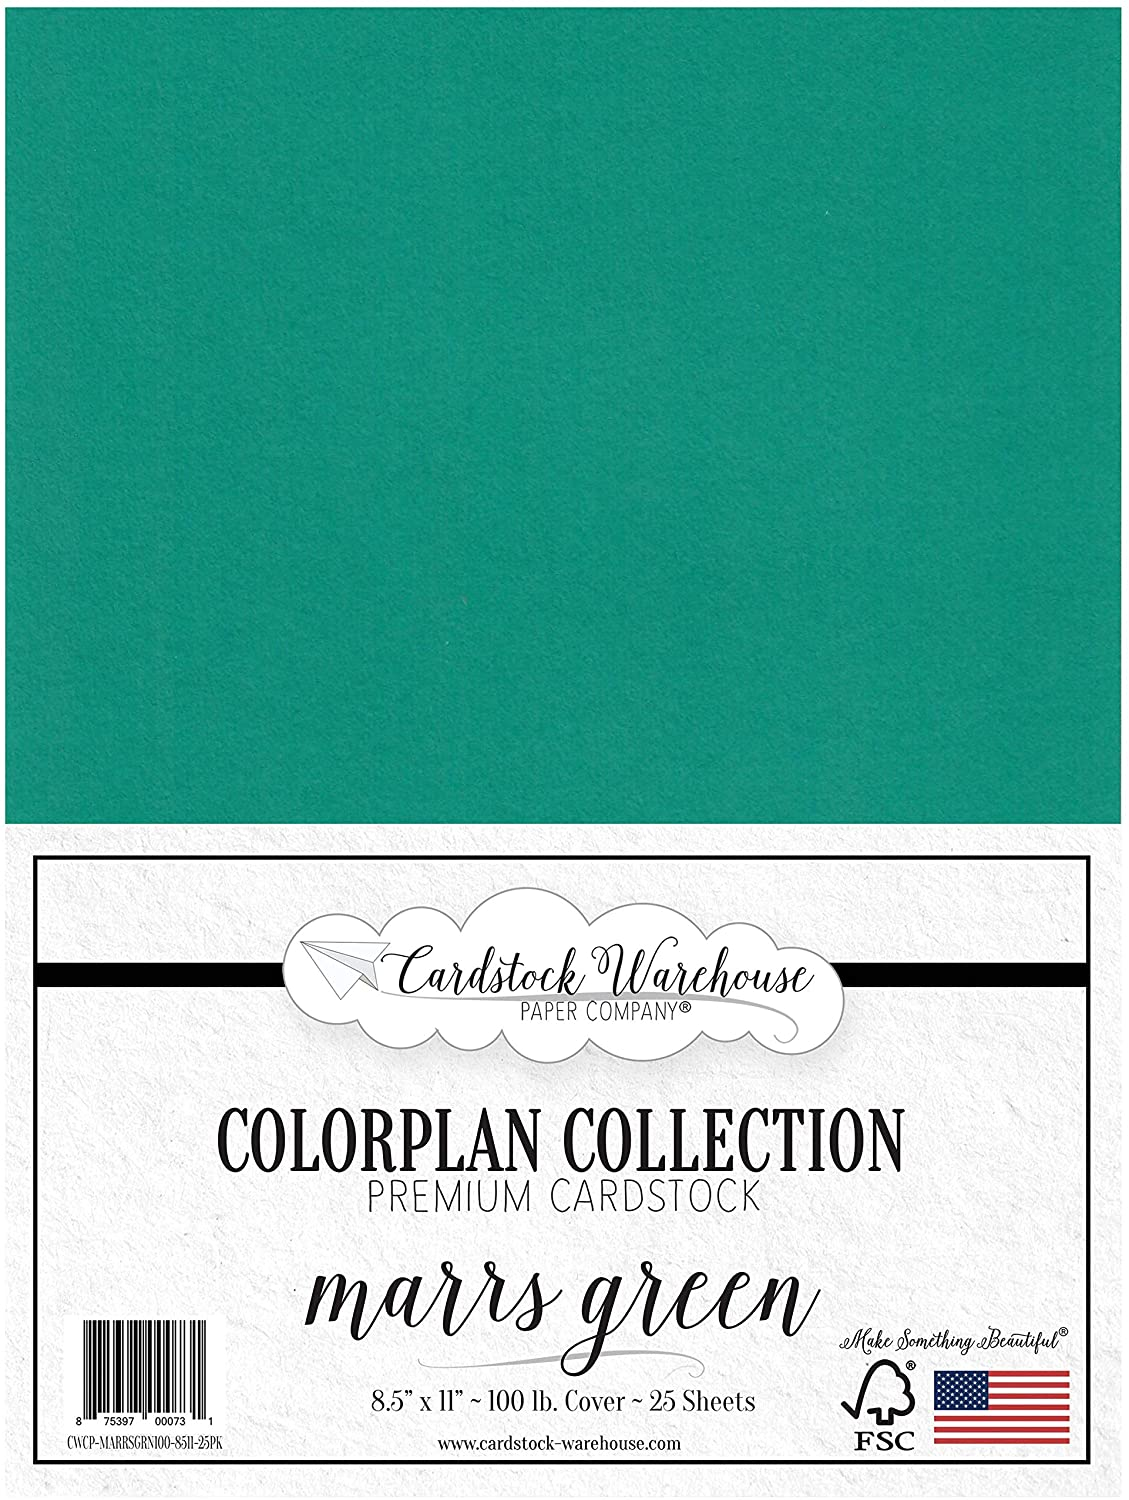 MARRS Green/Teal Green Cardstock Paper - 8.5 x 11 inch - Premium 100 lb. Cover - 25 Sheets from Cardstock Warehouse